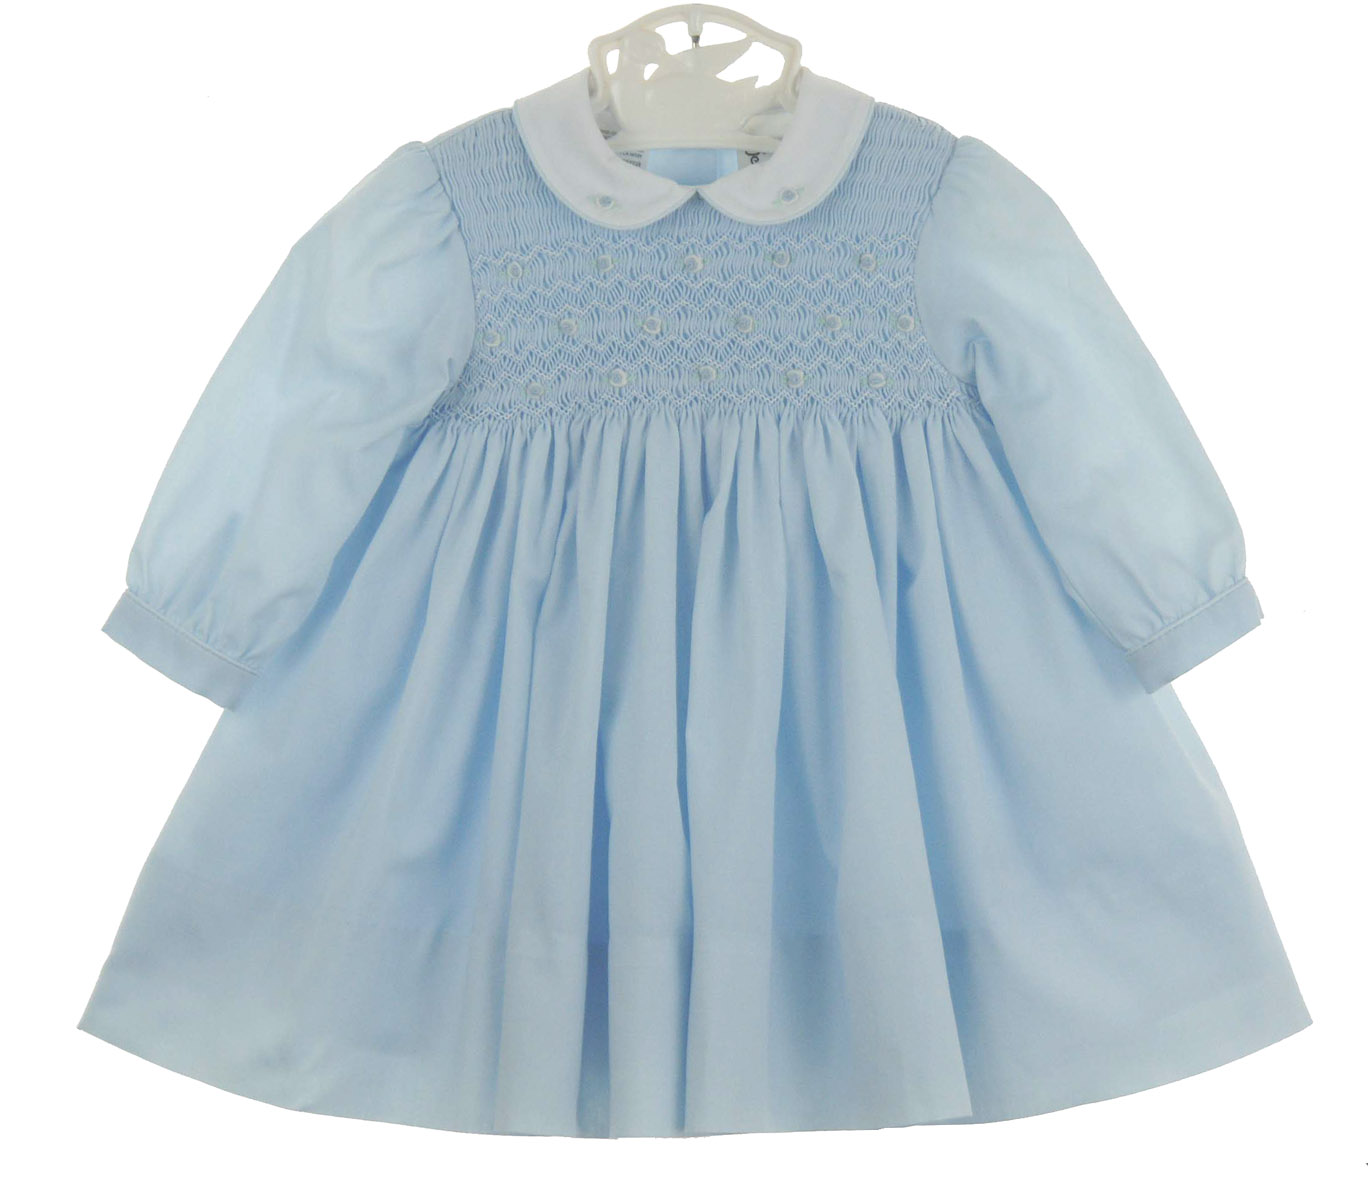 Toddler White Shoes Dress